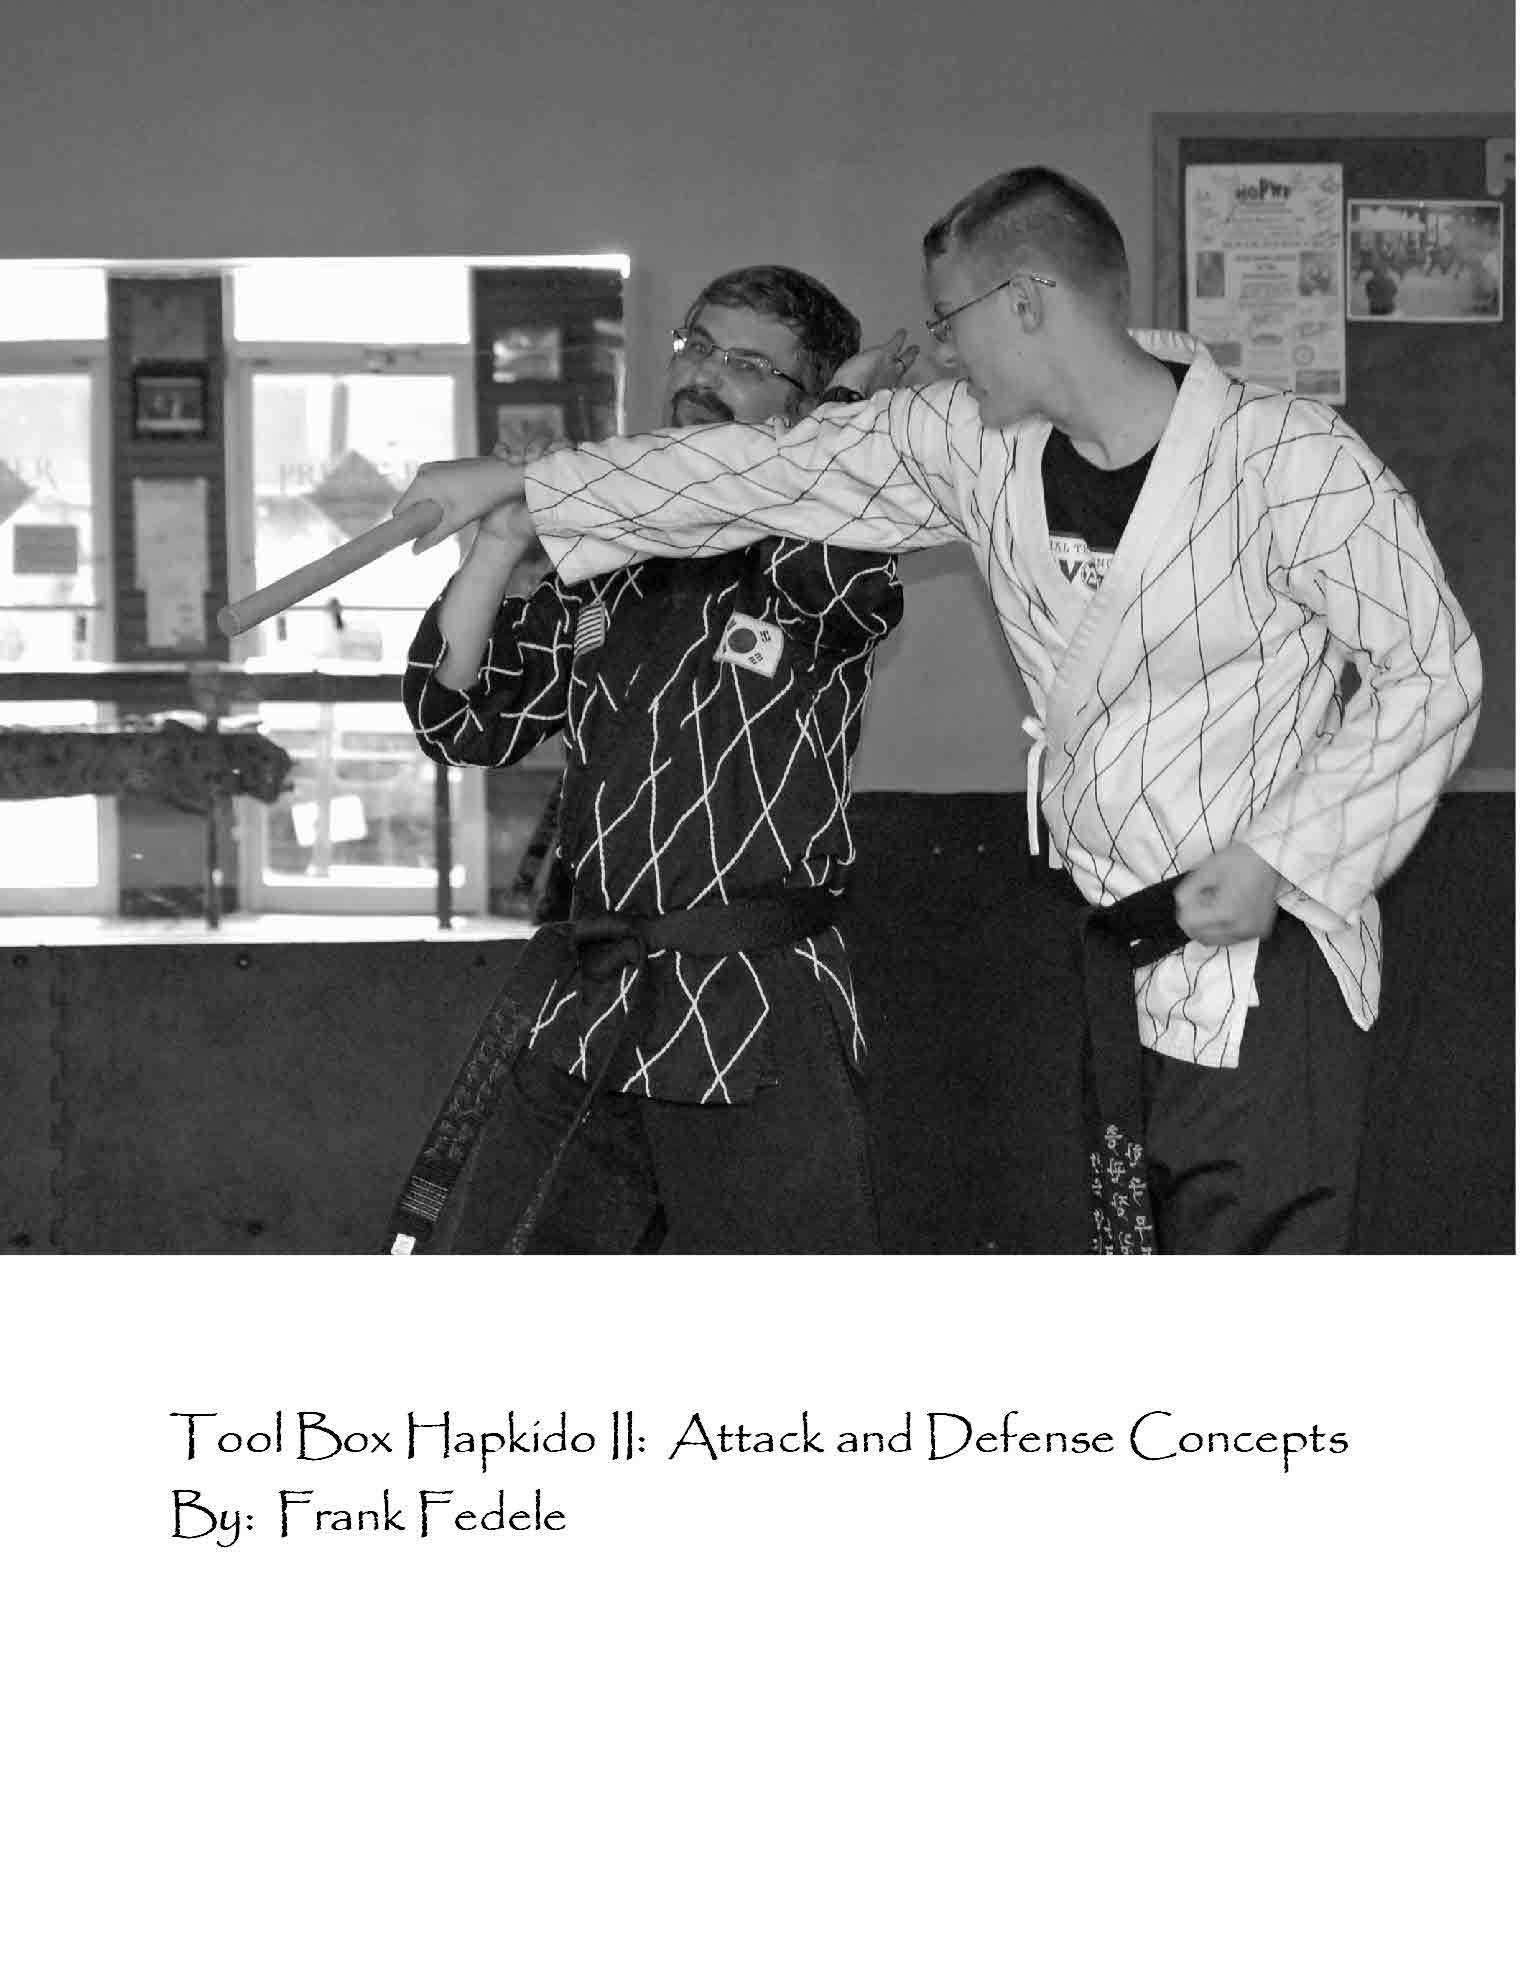 Tool Box Hapkido II: Attack and Defense Concepts